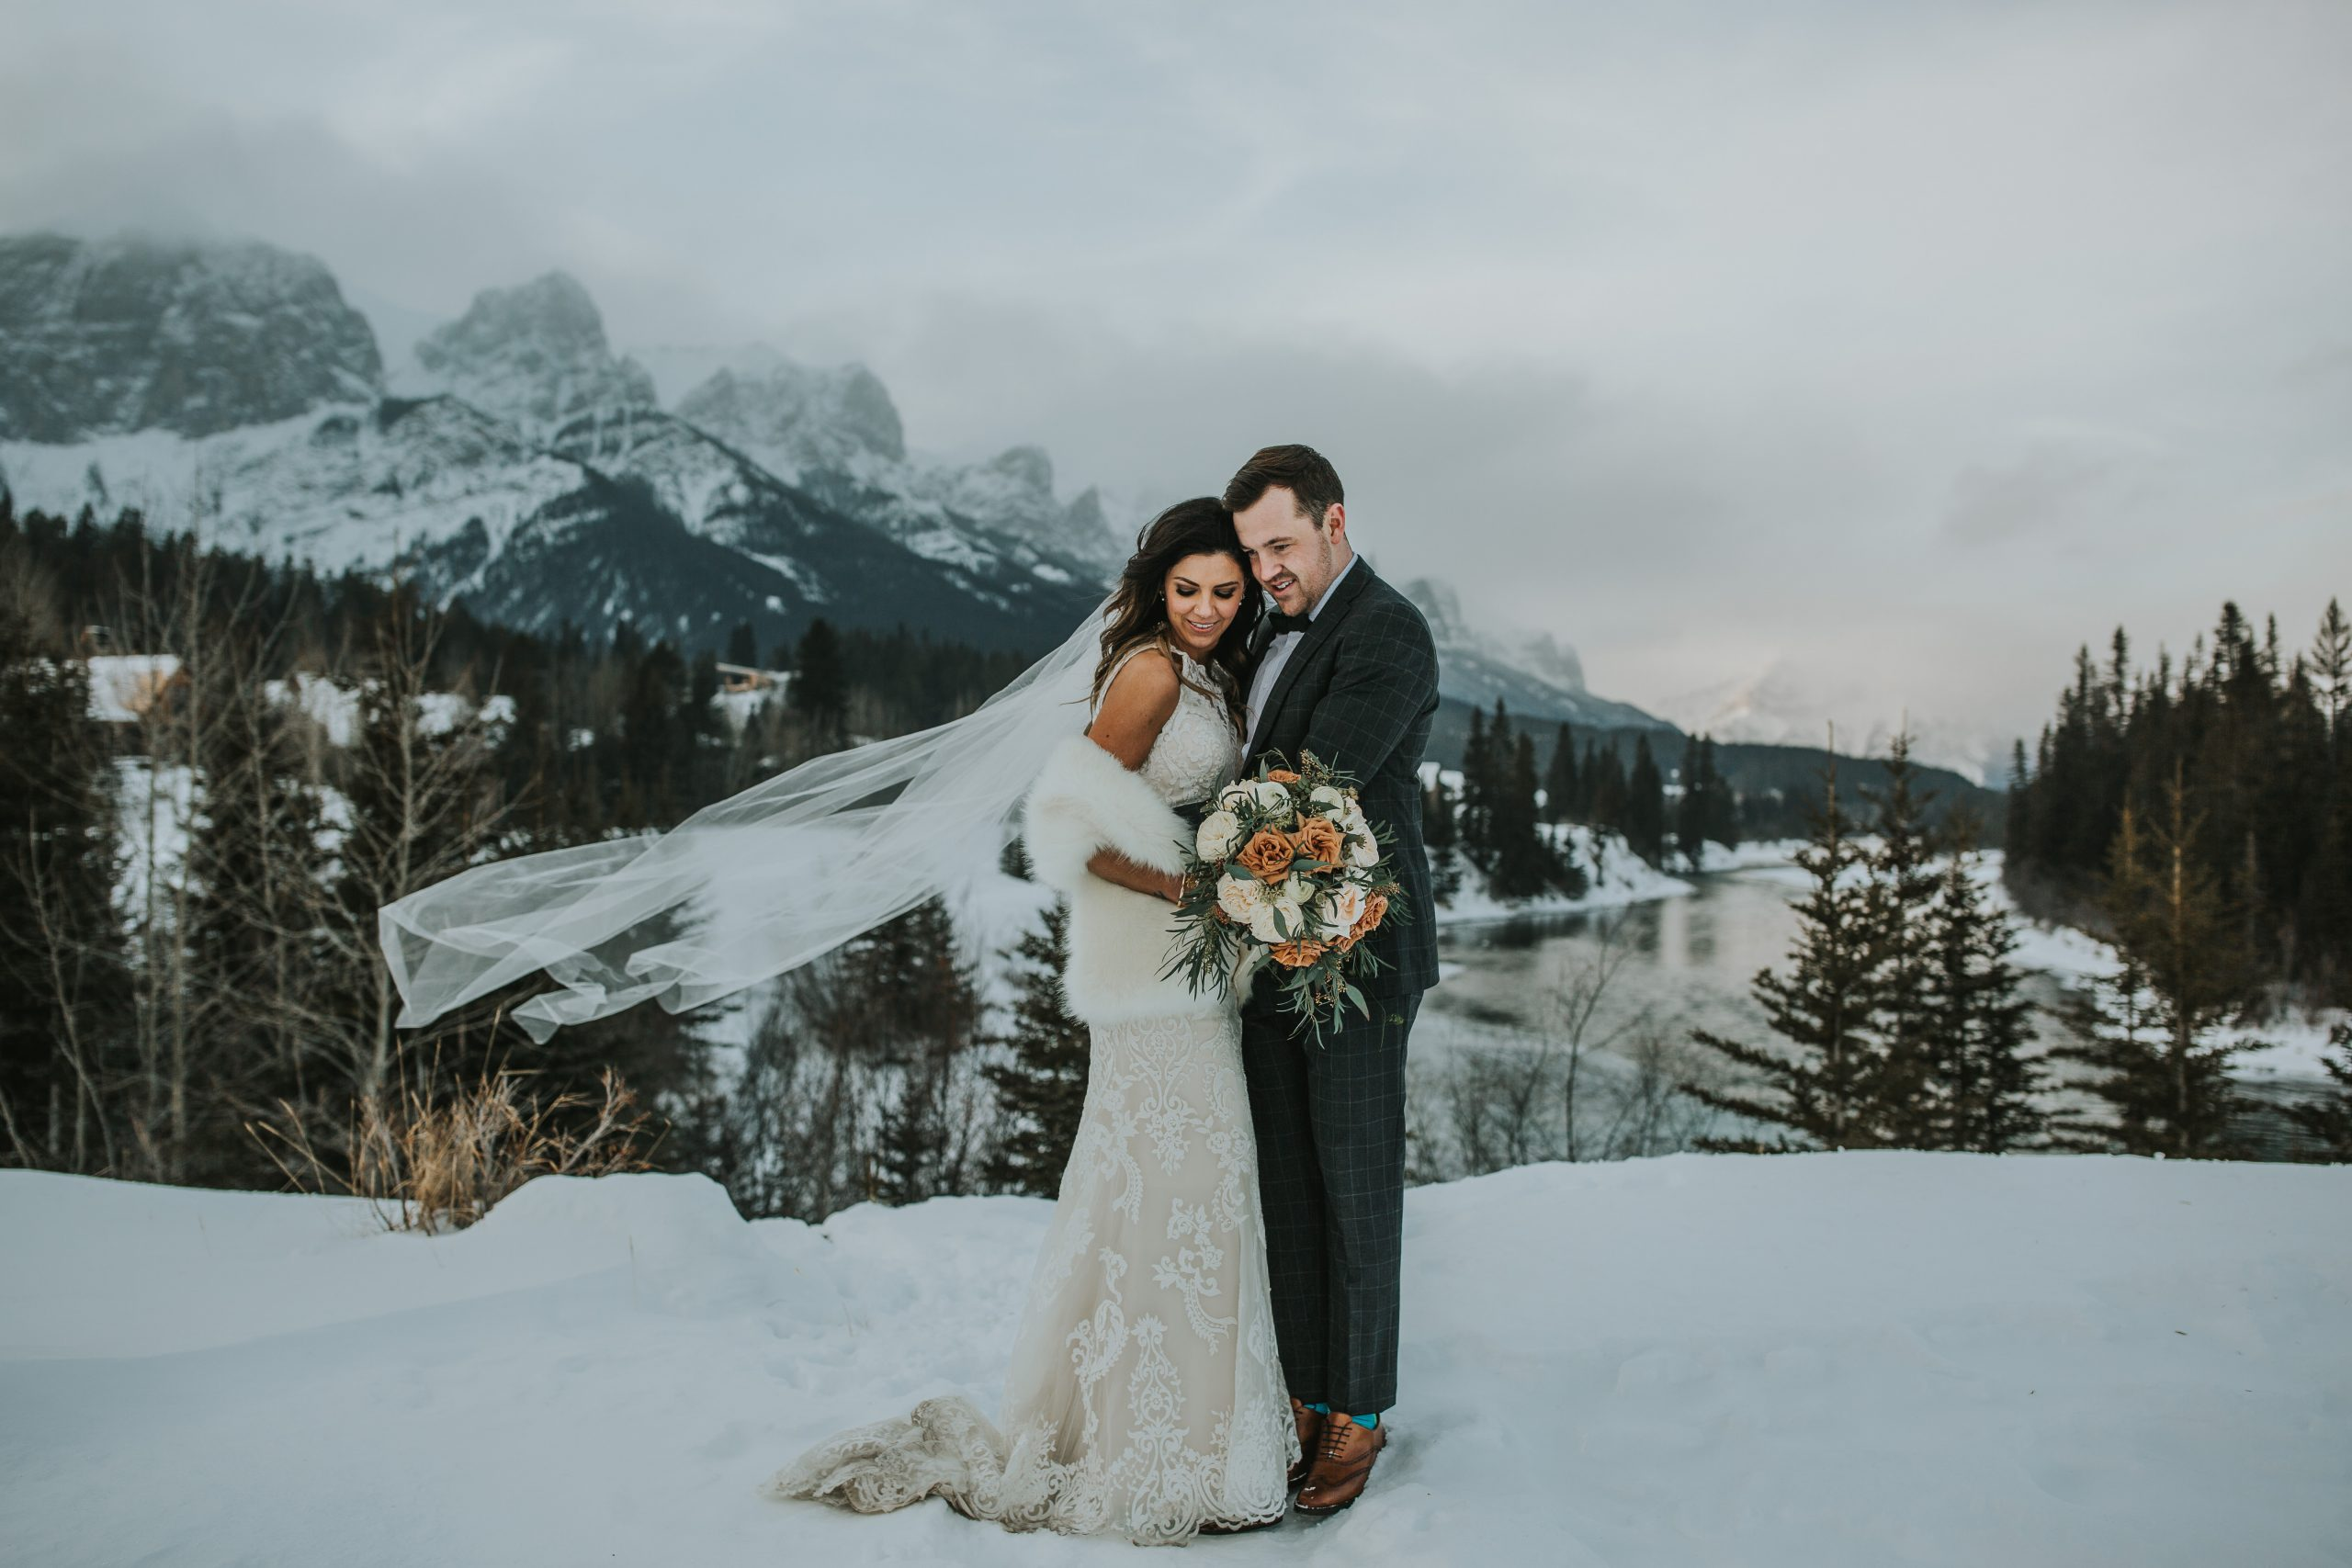 Couple in Wedding Pose in the Mountains While Bride Wearing a Lace Wedding Dress Called Winifred by Sottero and Midgley